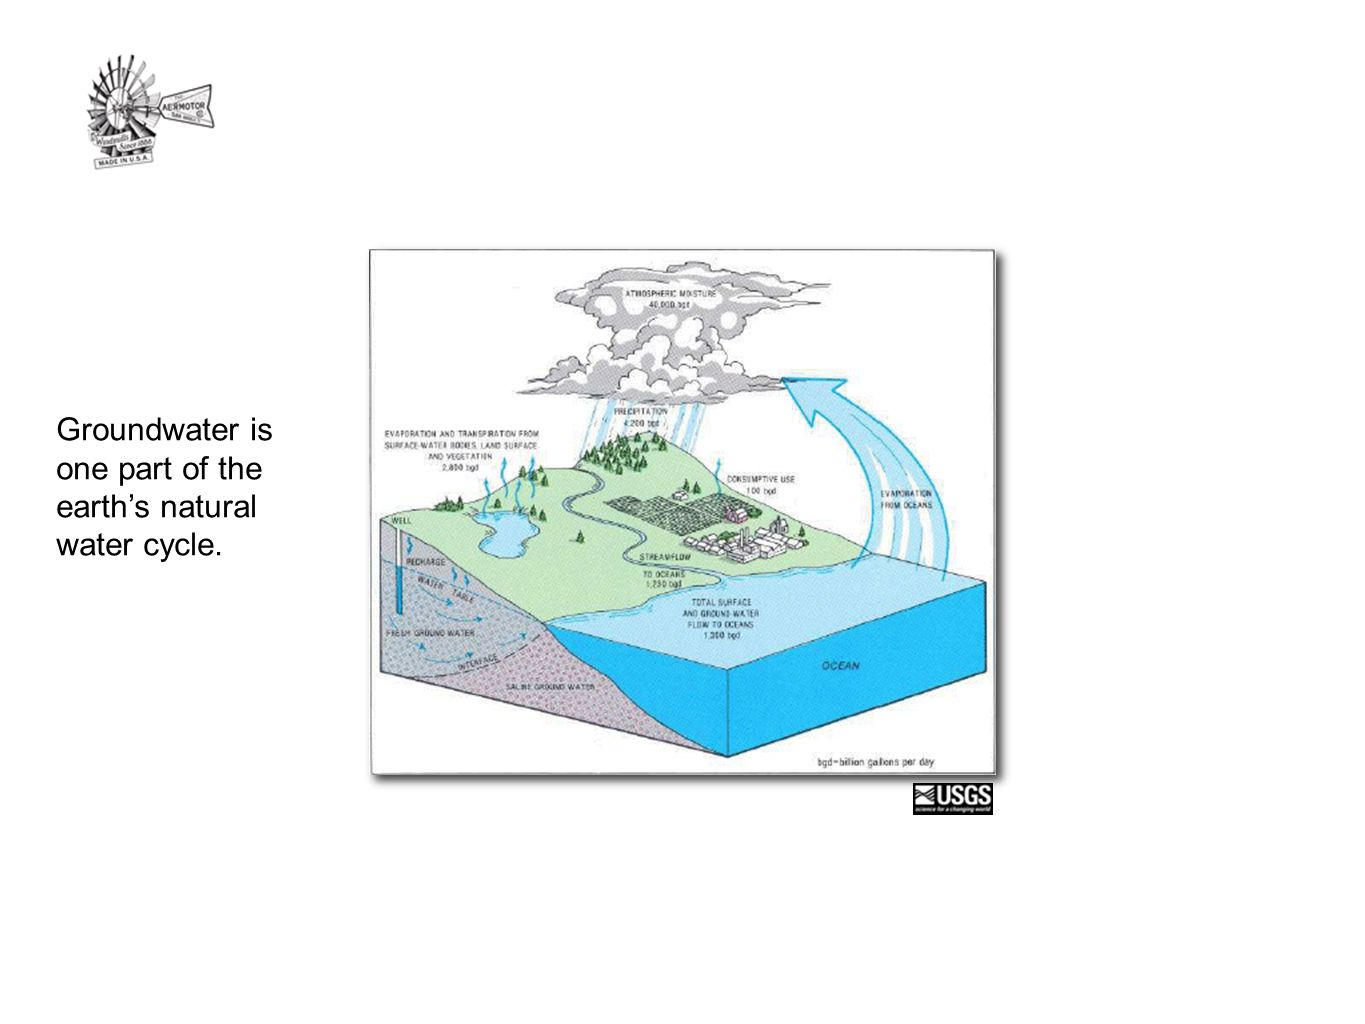 Groundwater is one part of the earth's natural water cycle.